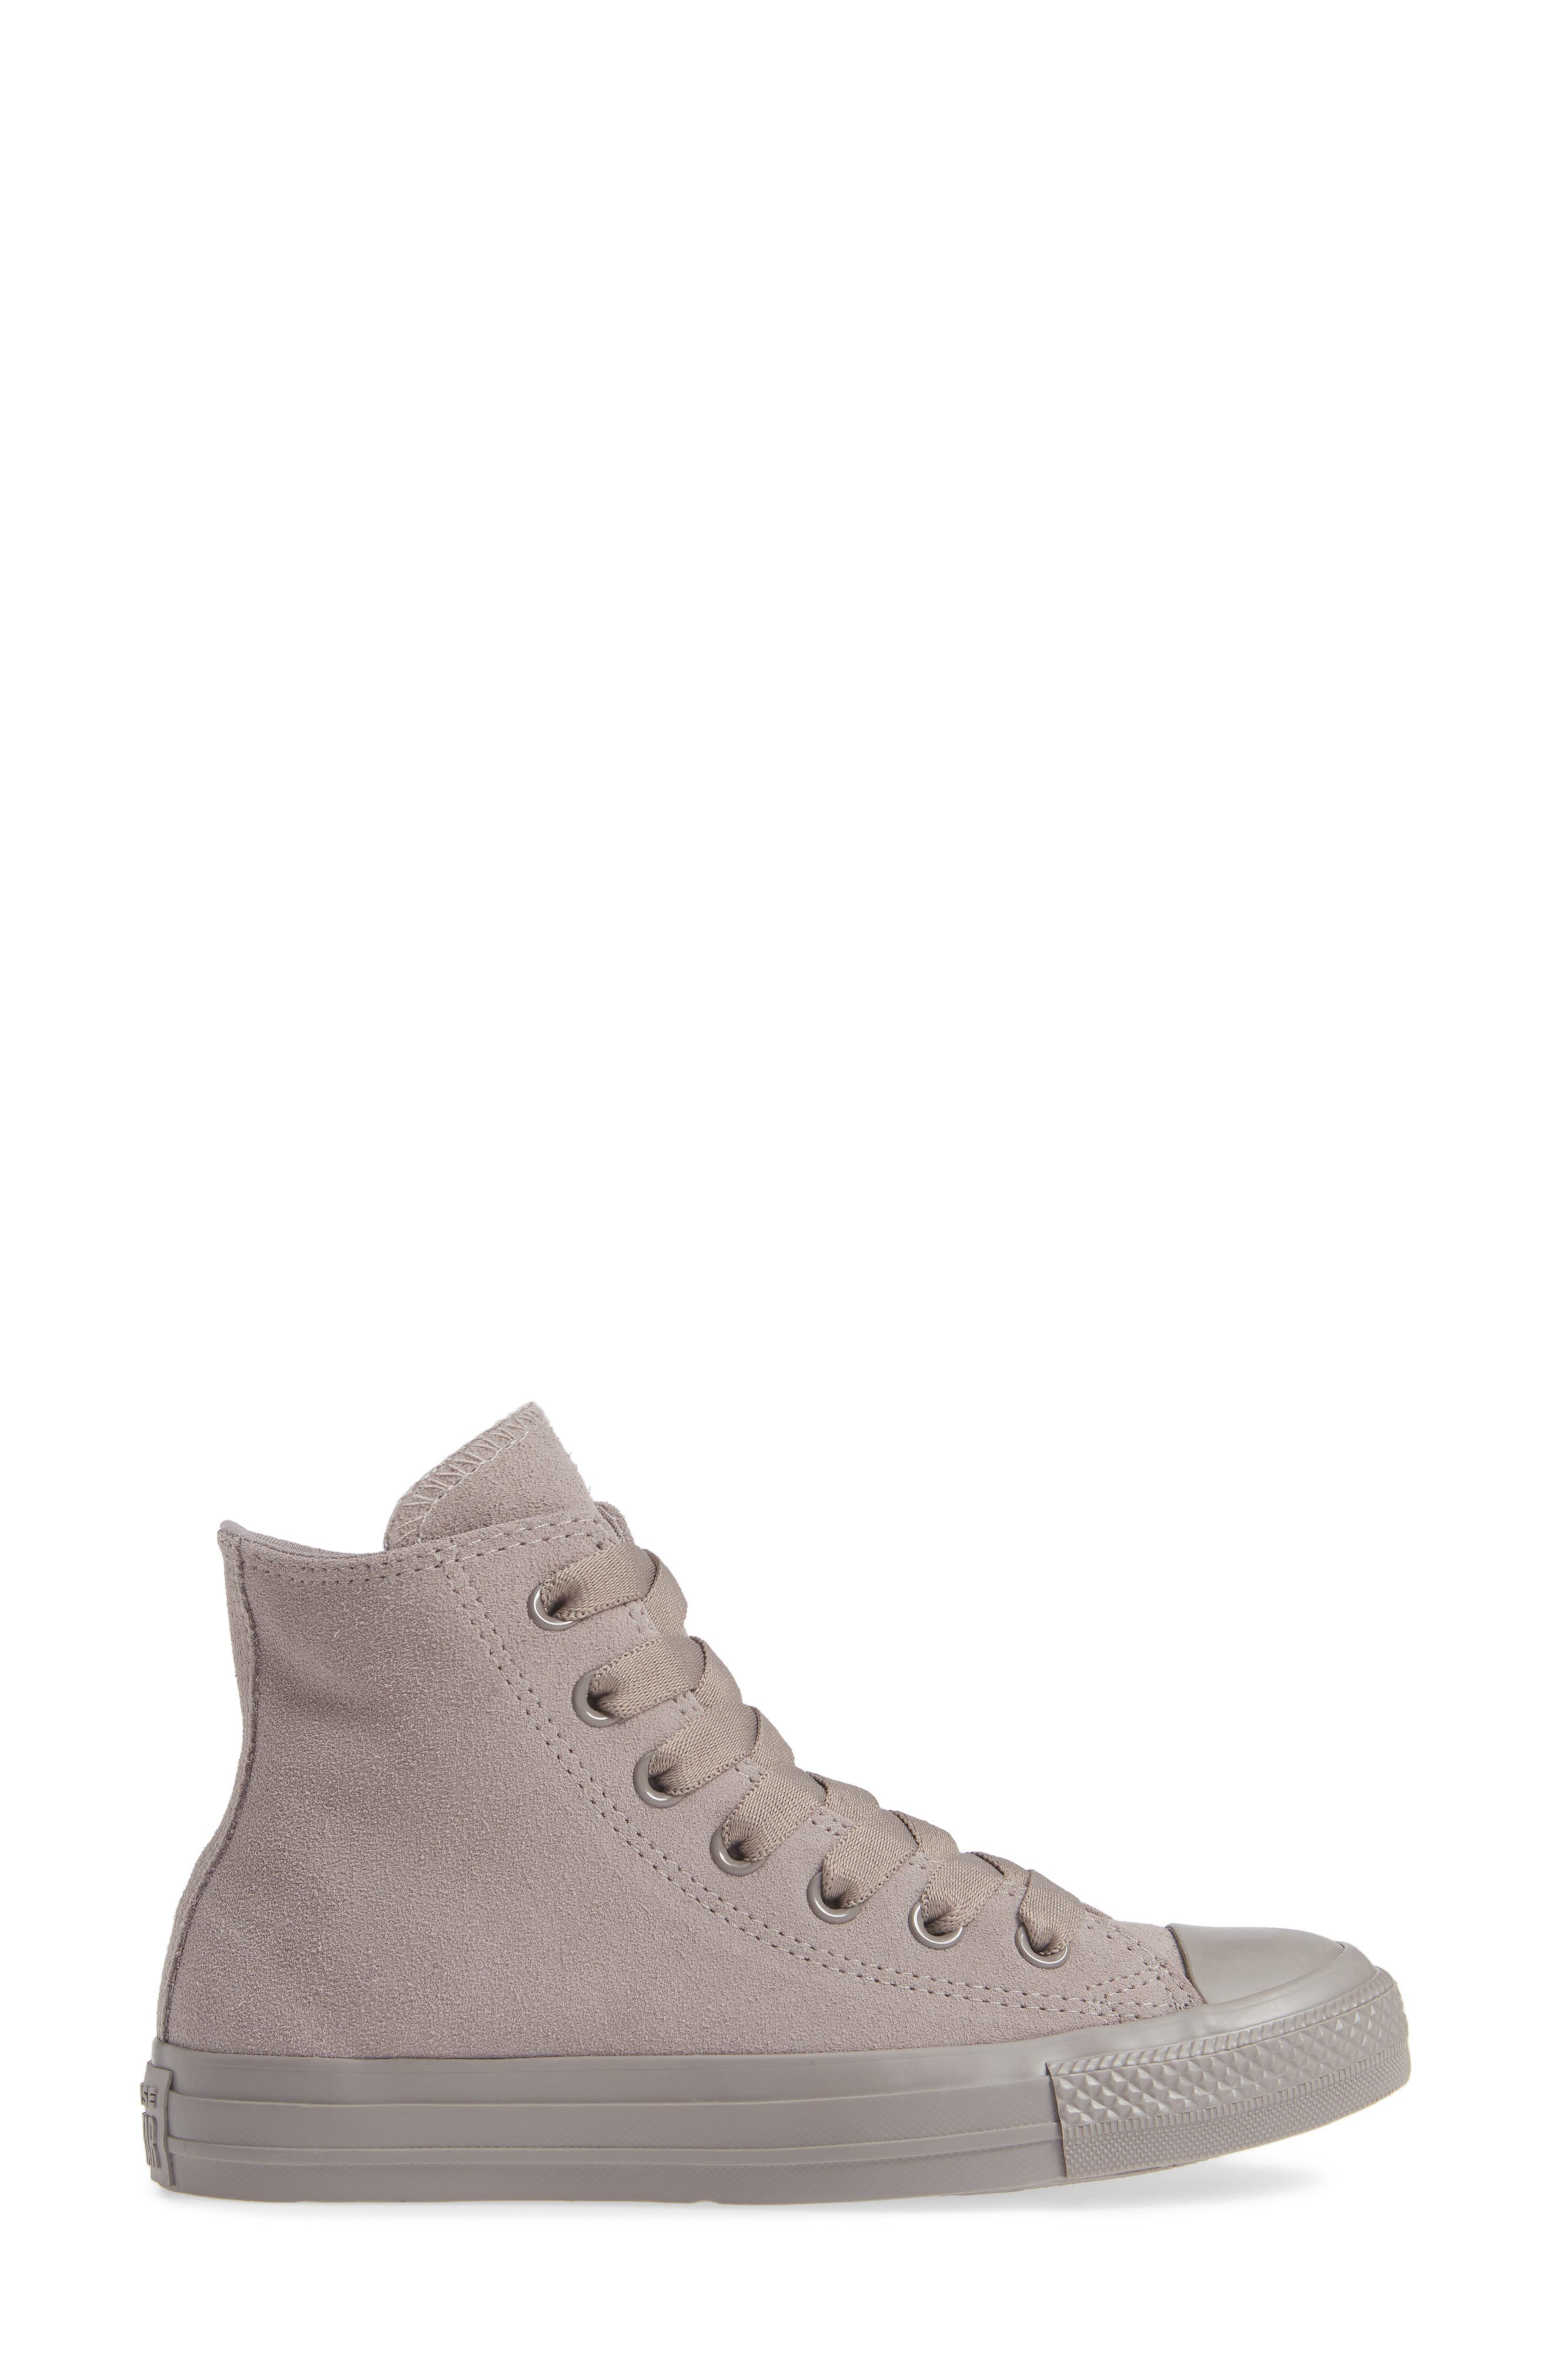 Chuck Taylor<sup>®</sup> All Star<sup>®</sup> Hi Sneaker,                             Alternate thumbnail 3, color,                             MERCURY GREY SUEDE